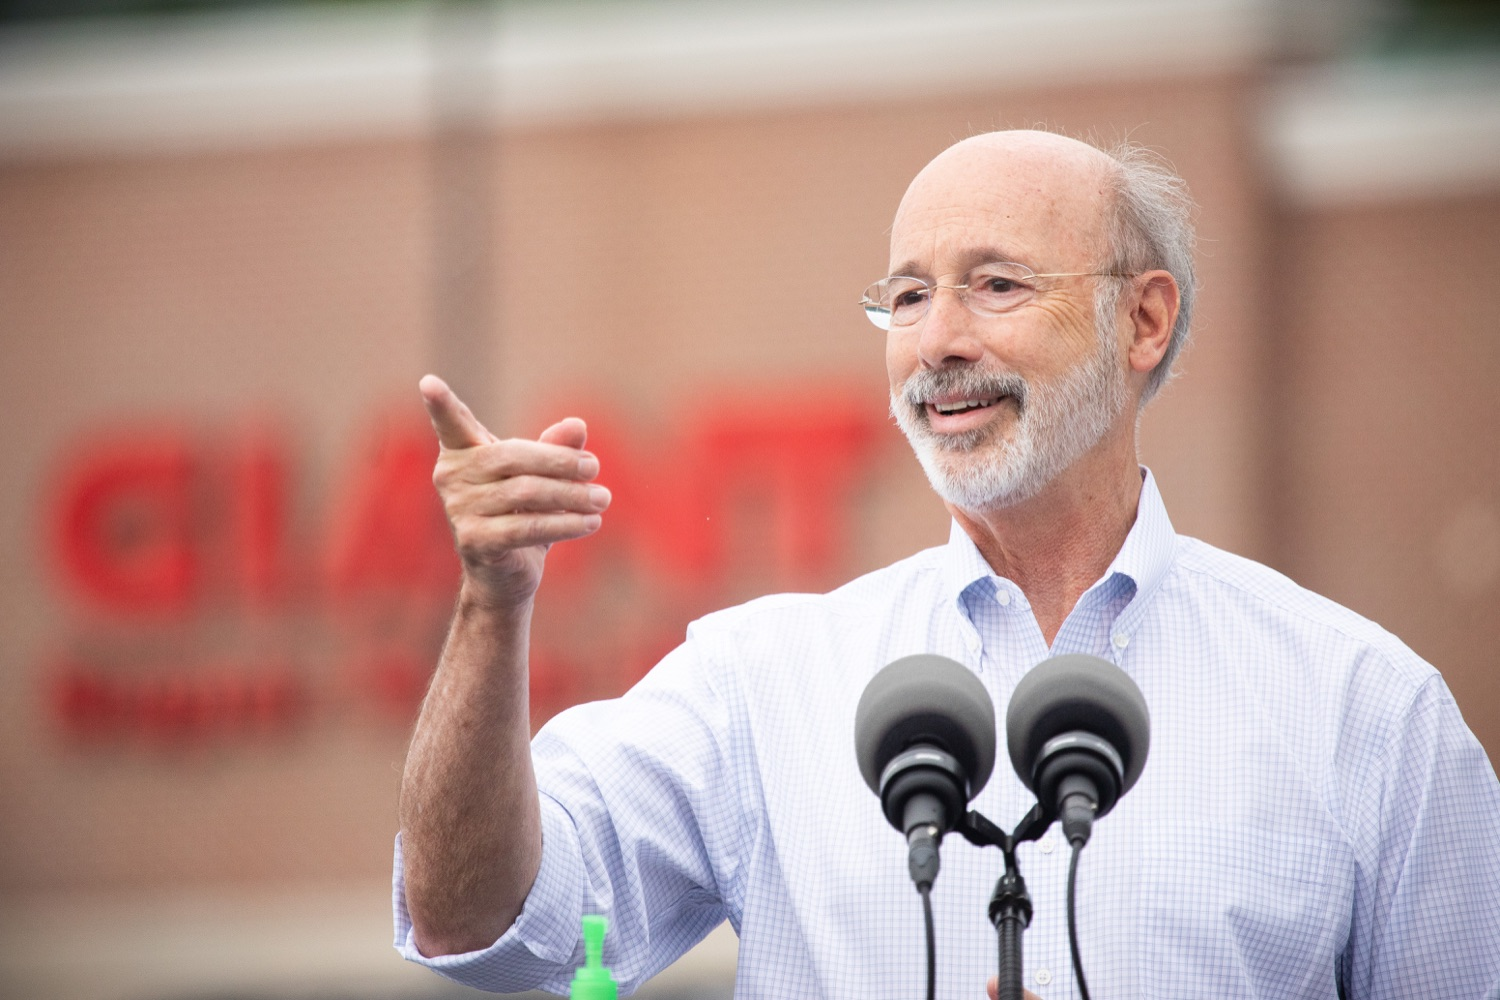 """<a href=""""https://filesource.wostreaming.net/commonwealthofpa/photo/18166_gov_cares_act_dz_01.jpg"""" target=""""_blank"""">⇣Download Photo<br></a>Pennsylvania Governor Tom Wolf speaking to reporters at the announcement. Today, Governor Tom Wolf announced the availability of $50 million in grant funding to help employers provide hazard pay to employees in life-sustaining occupations during the COVID-19 pandemic. Hazard pay is intended to keep front-line employees working in vital industry sectors across Pennsylvania.  Harrisburg, PA  July 16, 2020"""